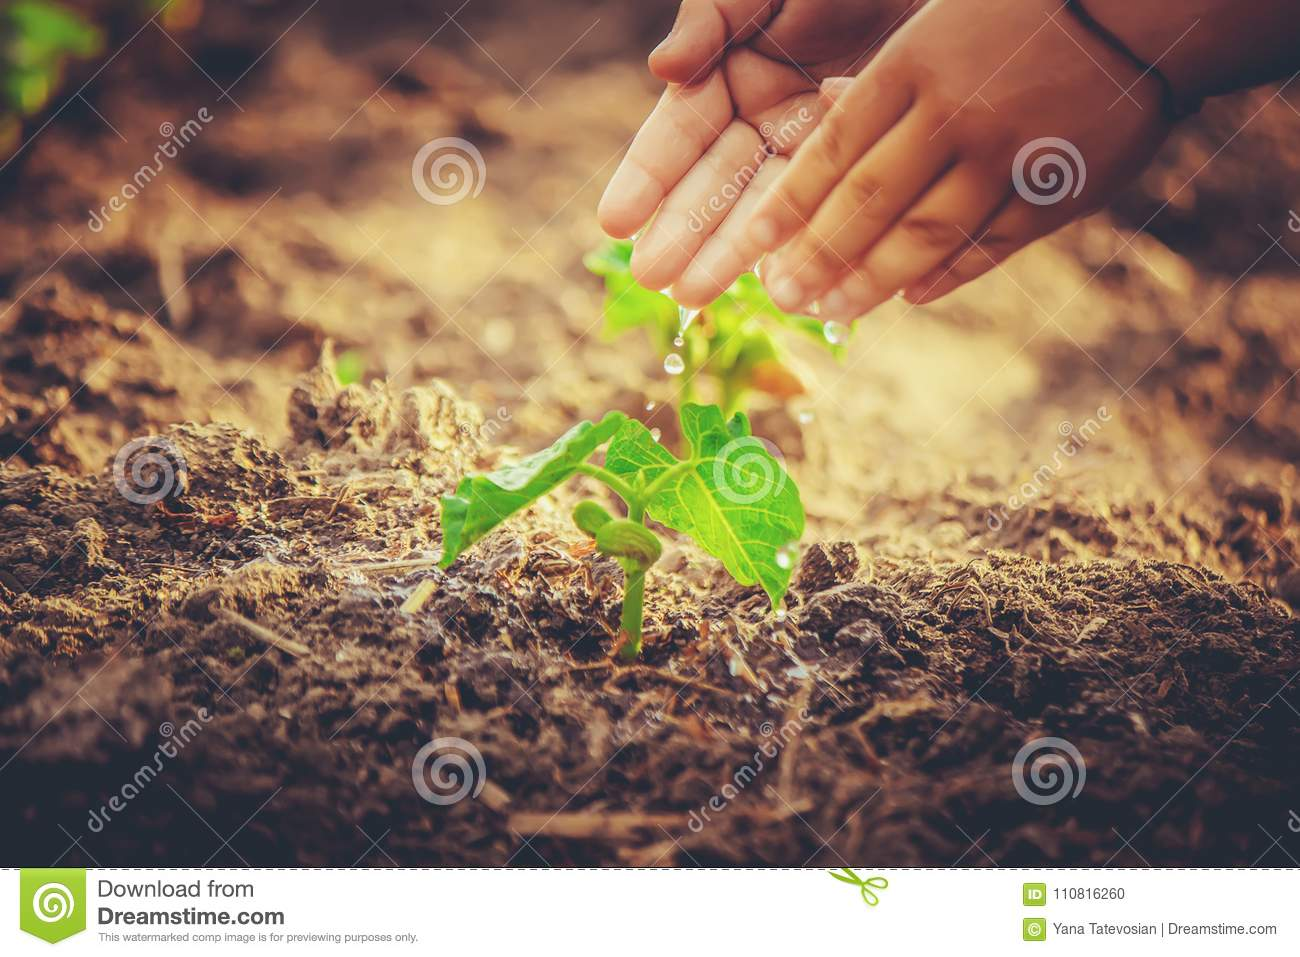 Caring for a new life. Watering young plants. The child`s hands.